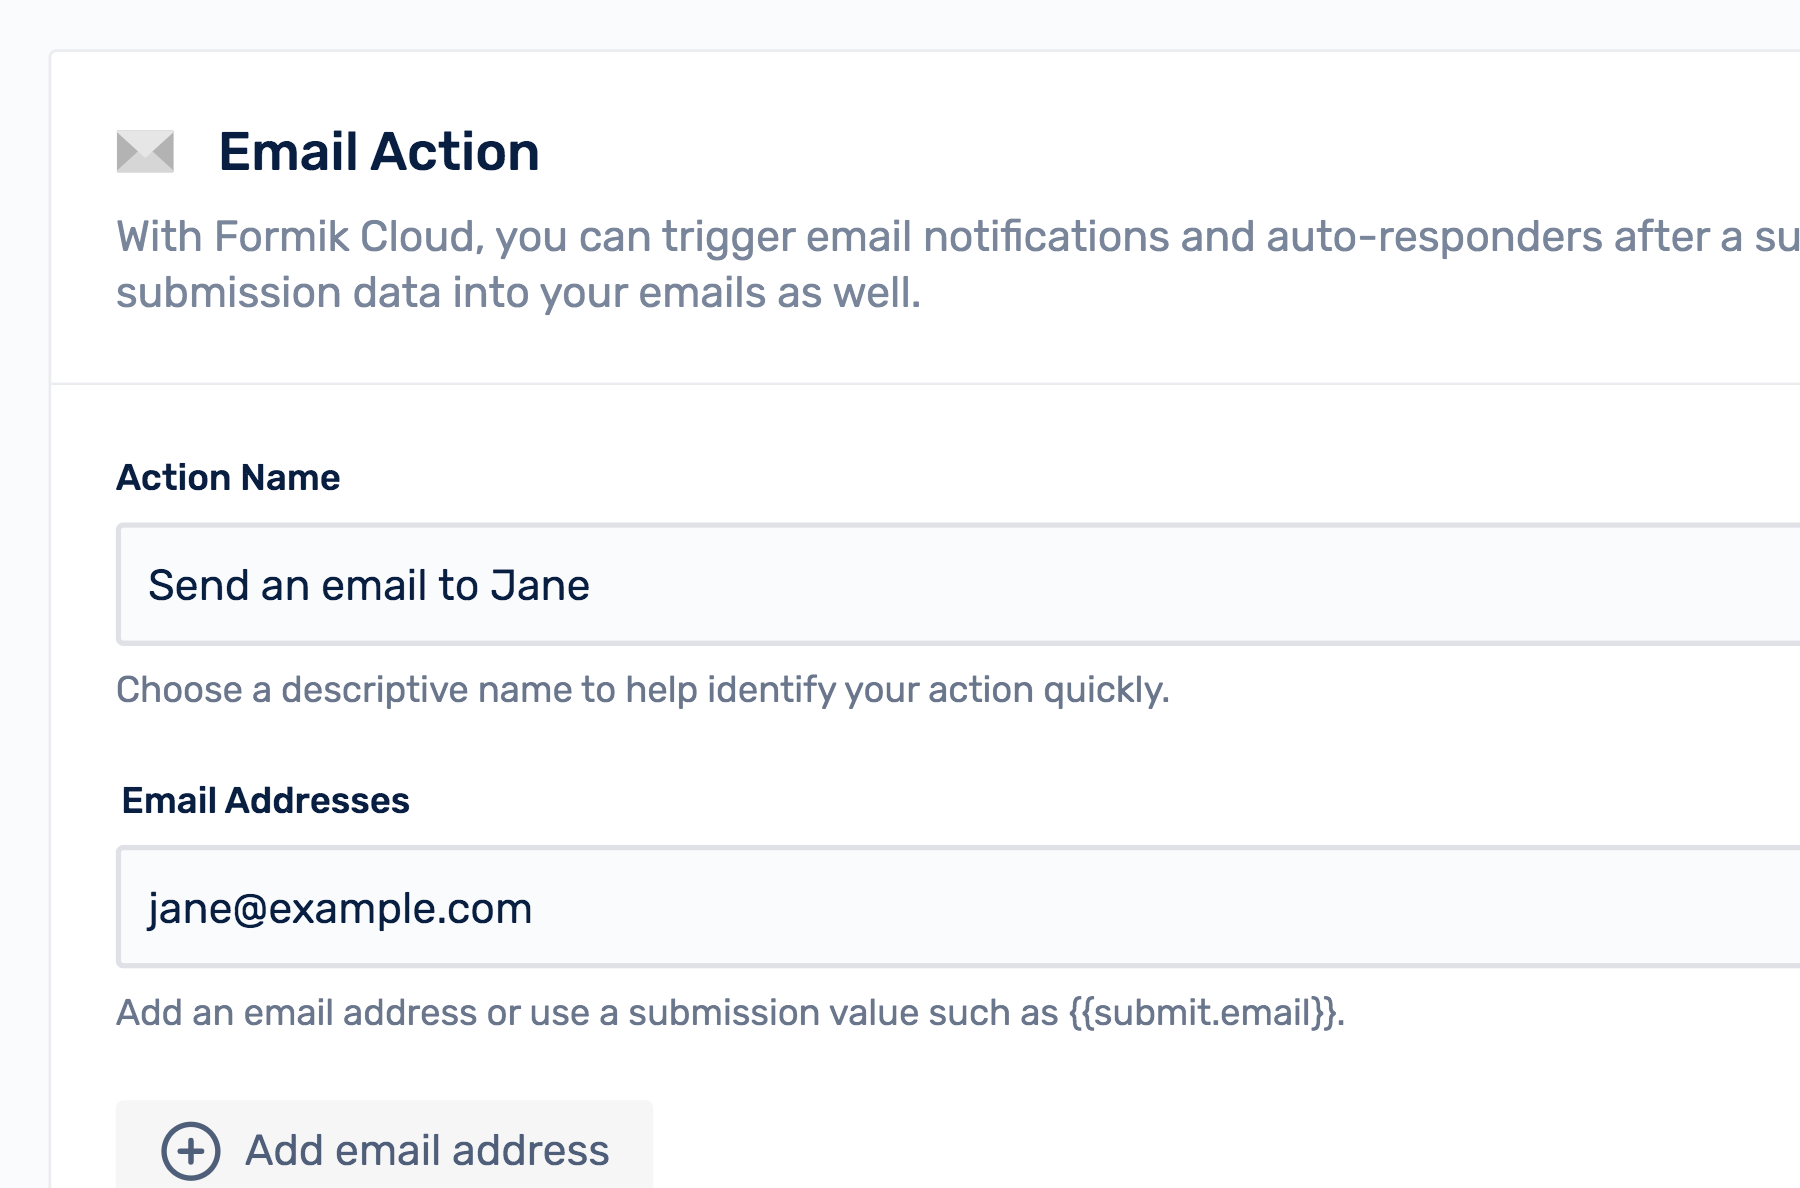 Email action form